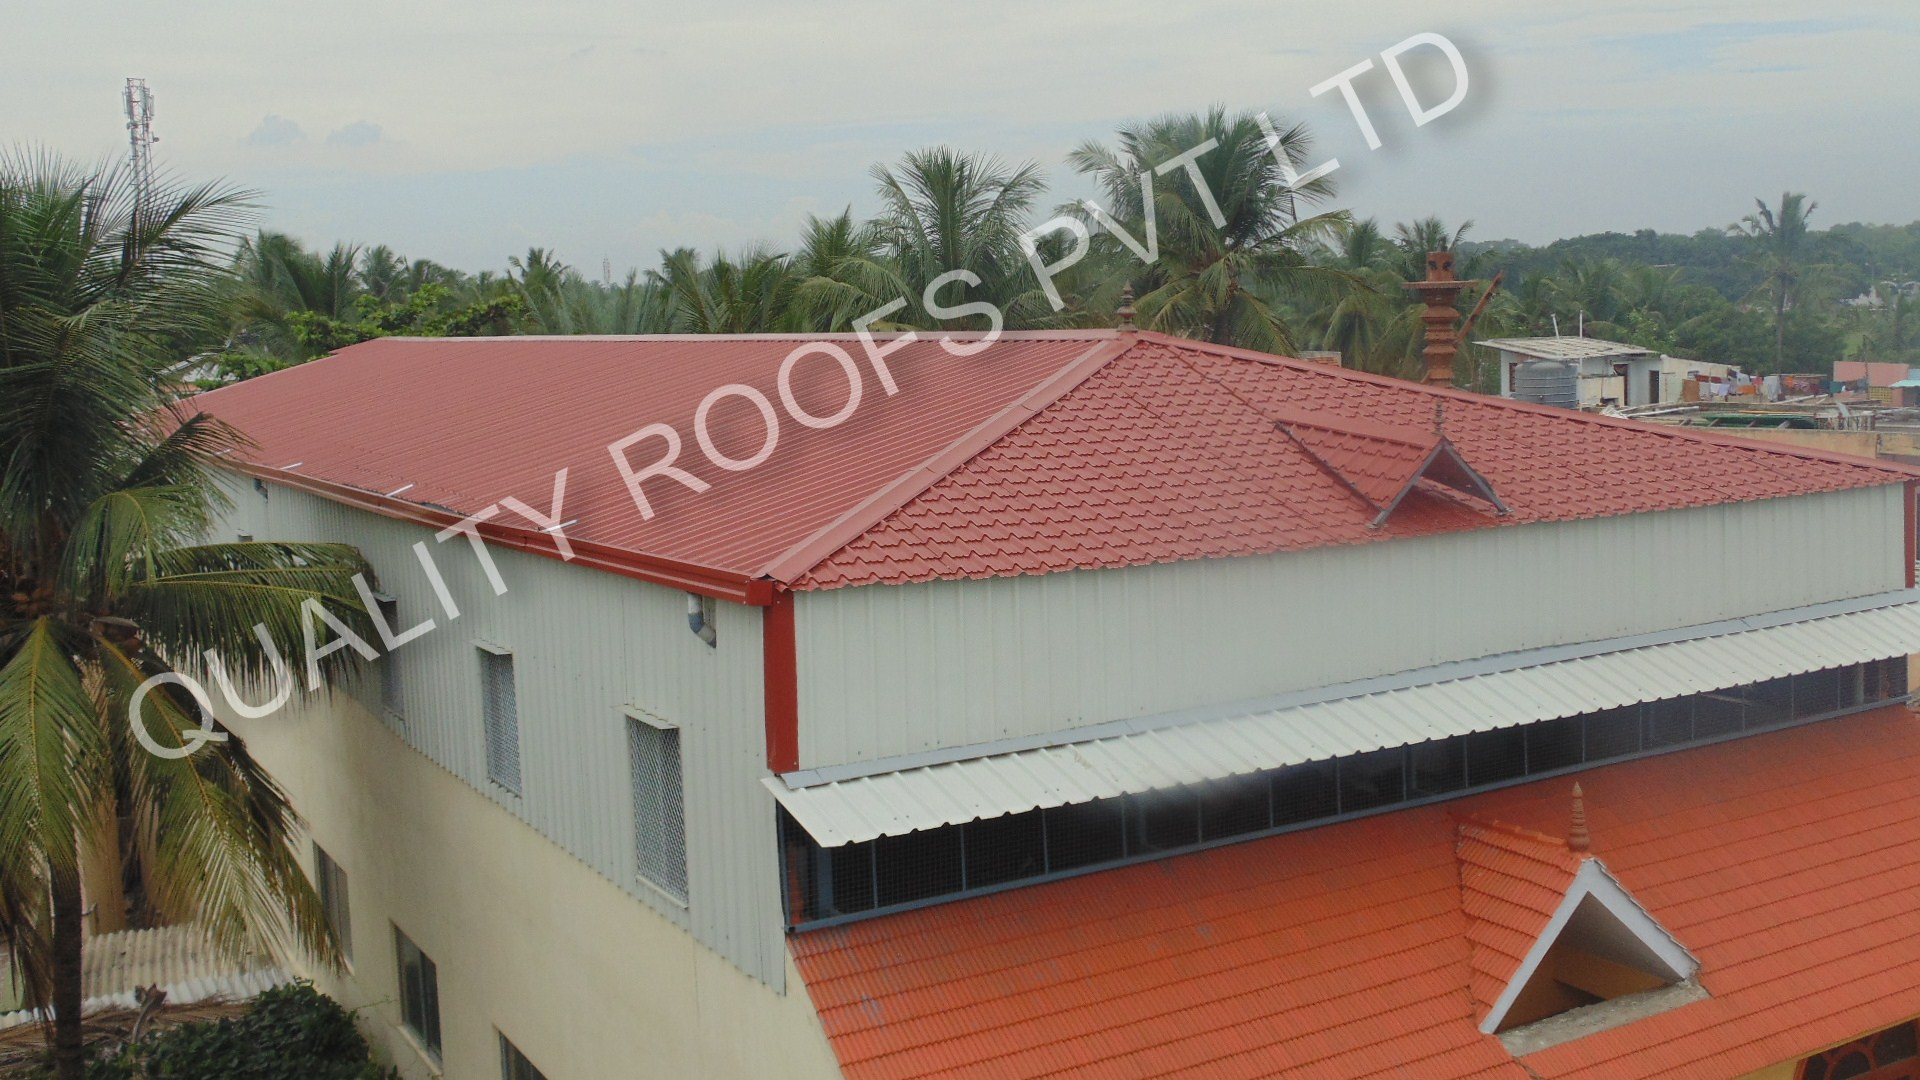 Terrace Roofing Works In Chennai                 We are the Leading Terrace Roofing Works In Chennai. We are offering our clients an exclusively range of Terrace Roof. This terrace roof is manufactured by vendor's experts utilizing the finest grade material and cutting-edge techniques as per the international standards. Offered terrace roof is acclaimed in the market due to its excellent texture. Our terrace roof is inspected on various quality parameters so as to deliver a defect free range.   Being a quality driven organization, we are affianced in offering a qualitative Terrace Roofing Shed. The roofing sheds offered by us are manufactured from the quality approved material under the observation of skilled professionals.  These roofing sheds are demanded in the industry due to their excellent finish & least maintenance. We are offering these roofing sheds in different sizes at competitive price.